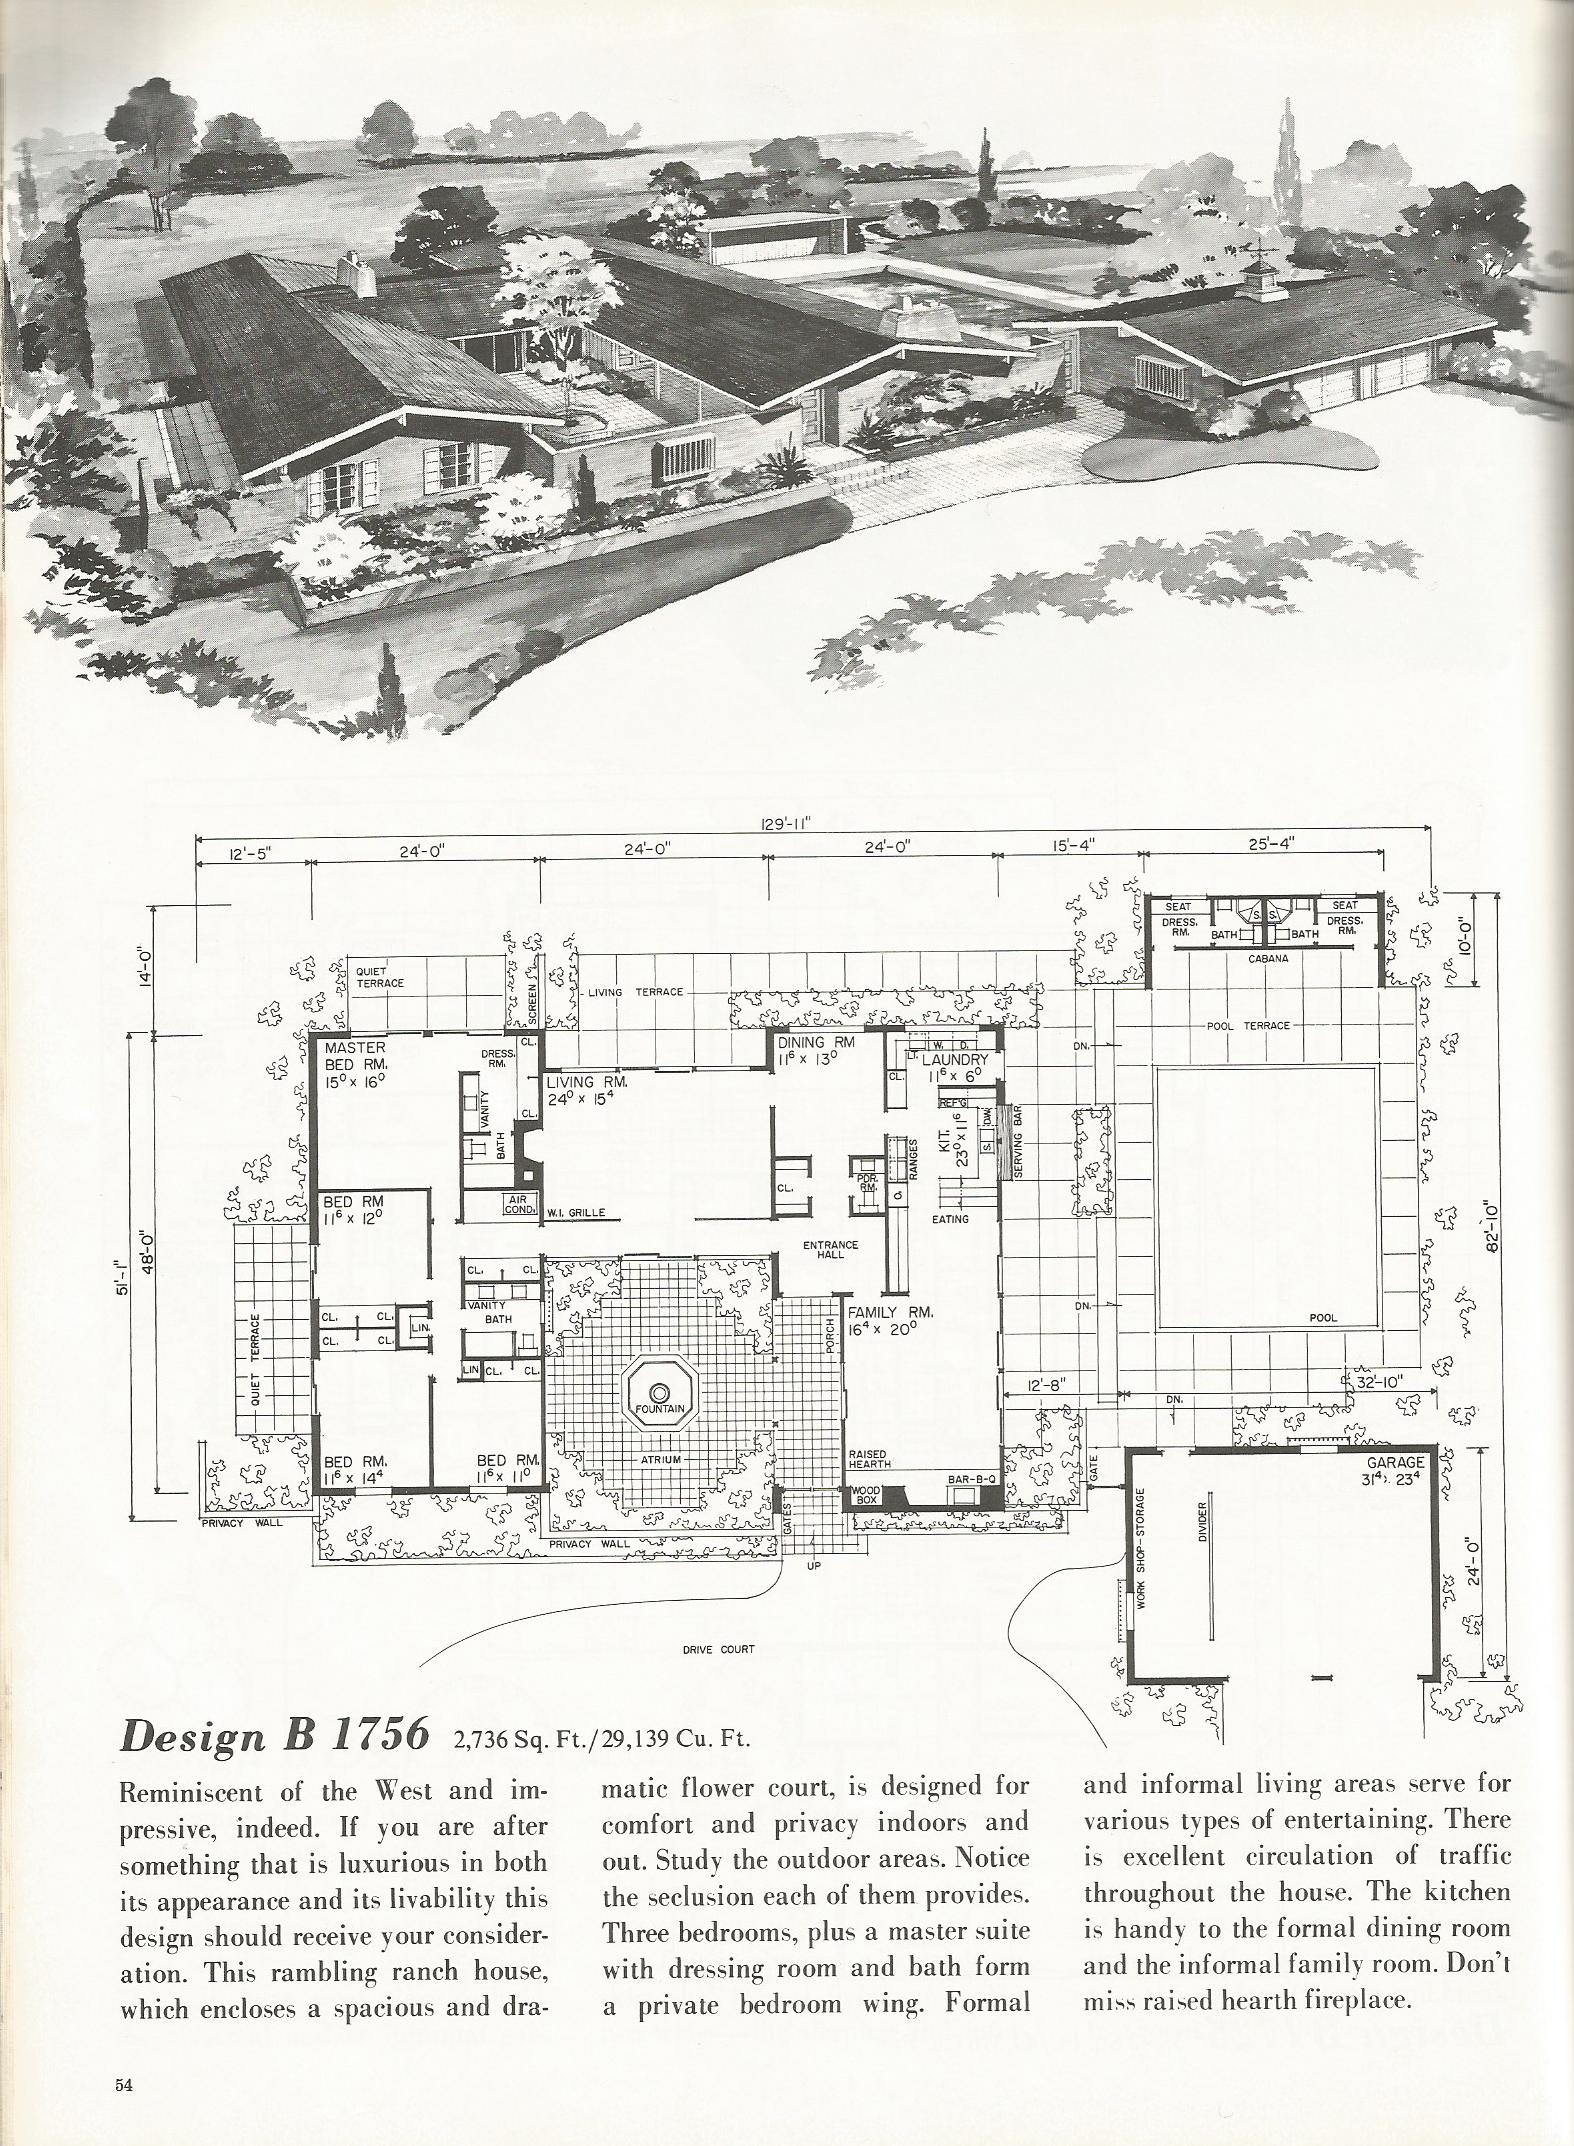 Vintage house plans 1756 antique alter ego for Western ranch style house plans